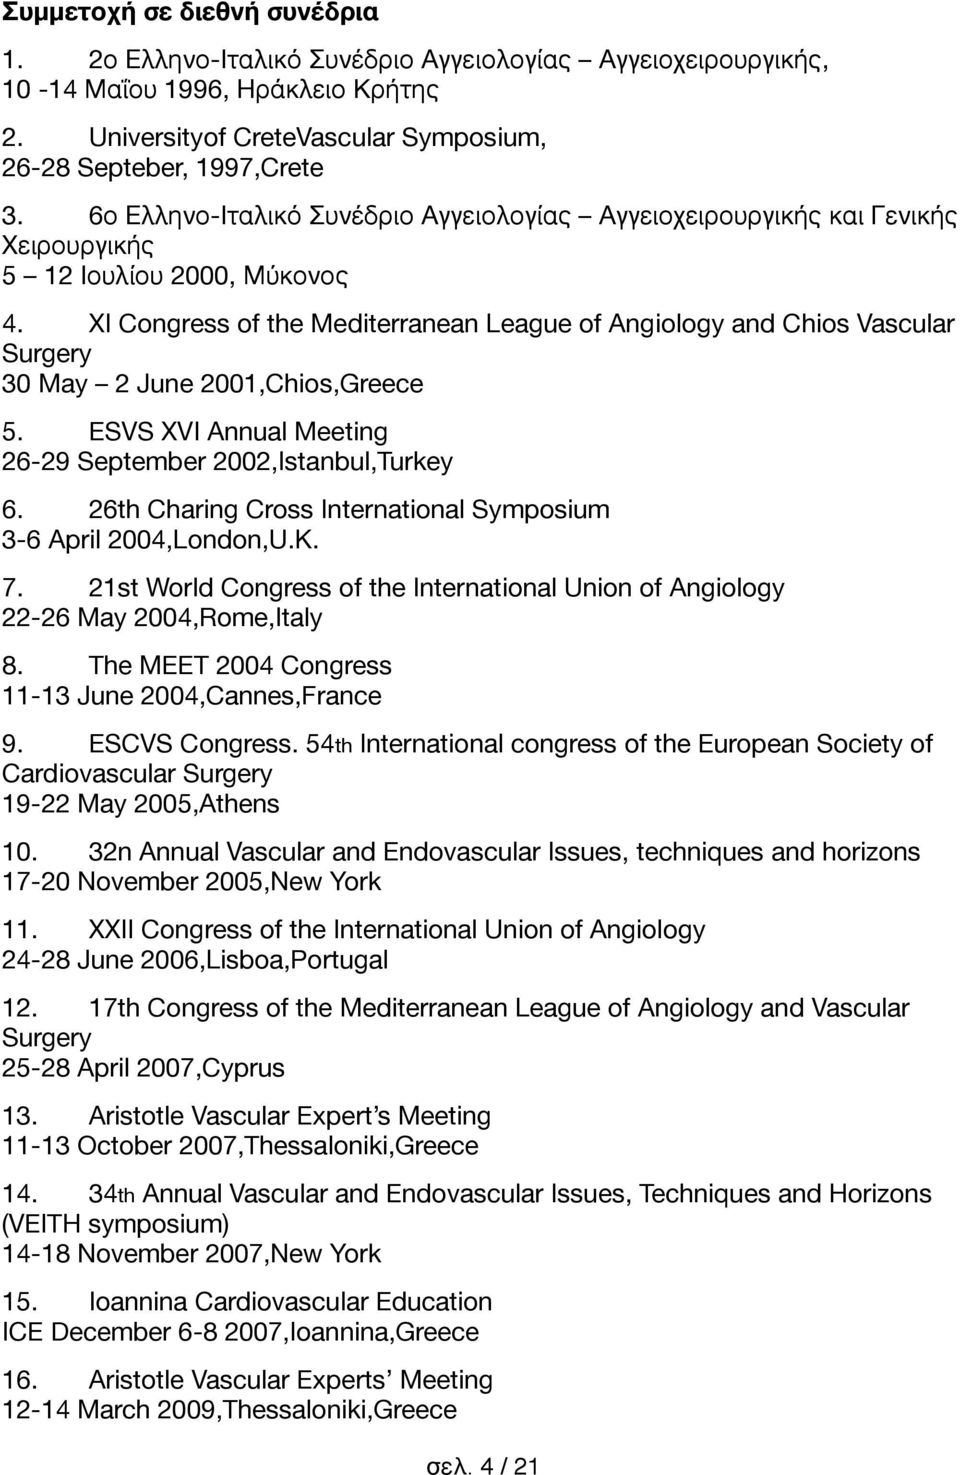 XI Congress of the Mediterranean League of Angiology and Chios Vascular Surgery 30 May 2 June 2001,Chios,Greece 5. ESVS XVI Annual Meeting 26-29 September 2002,Istanbul,Turkey 6.